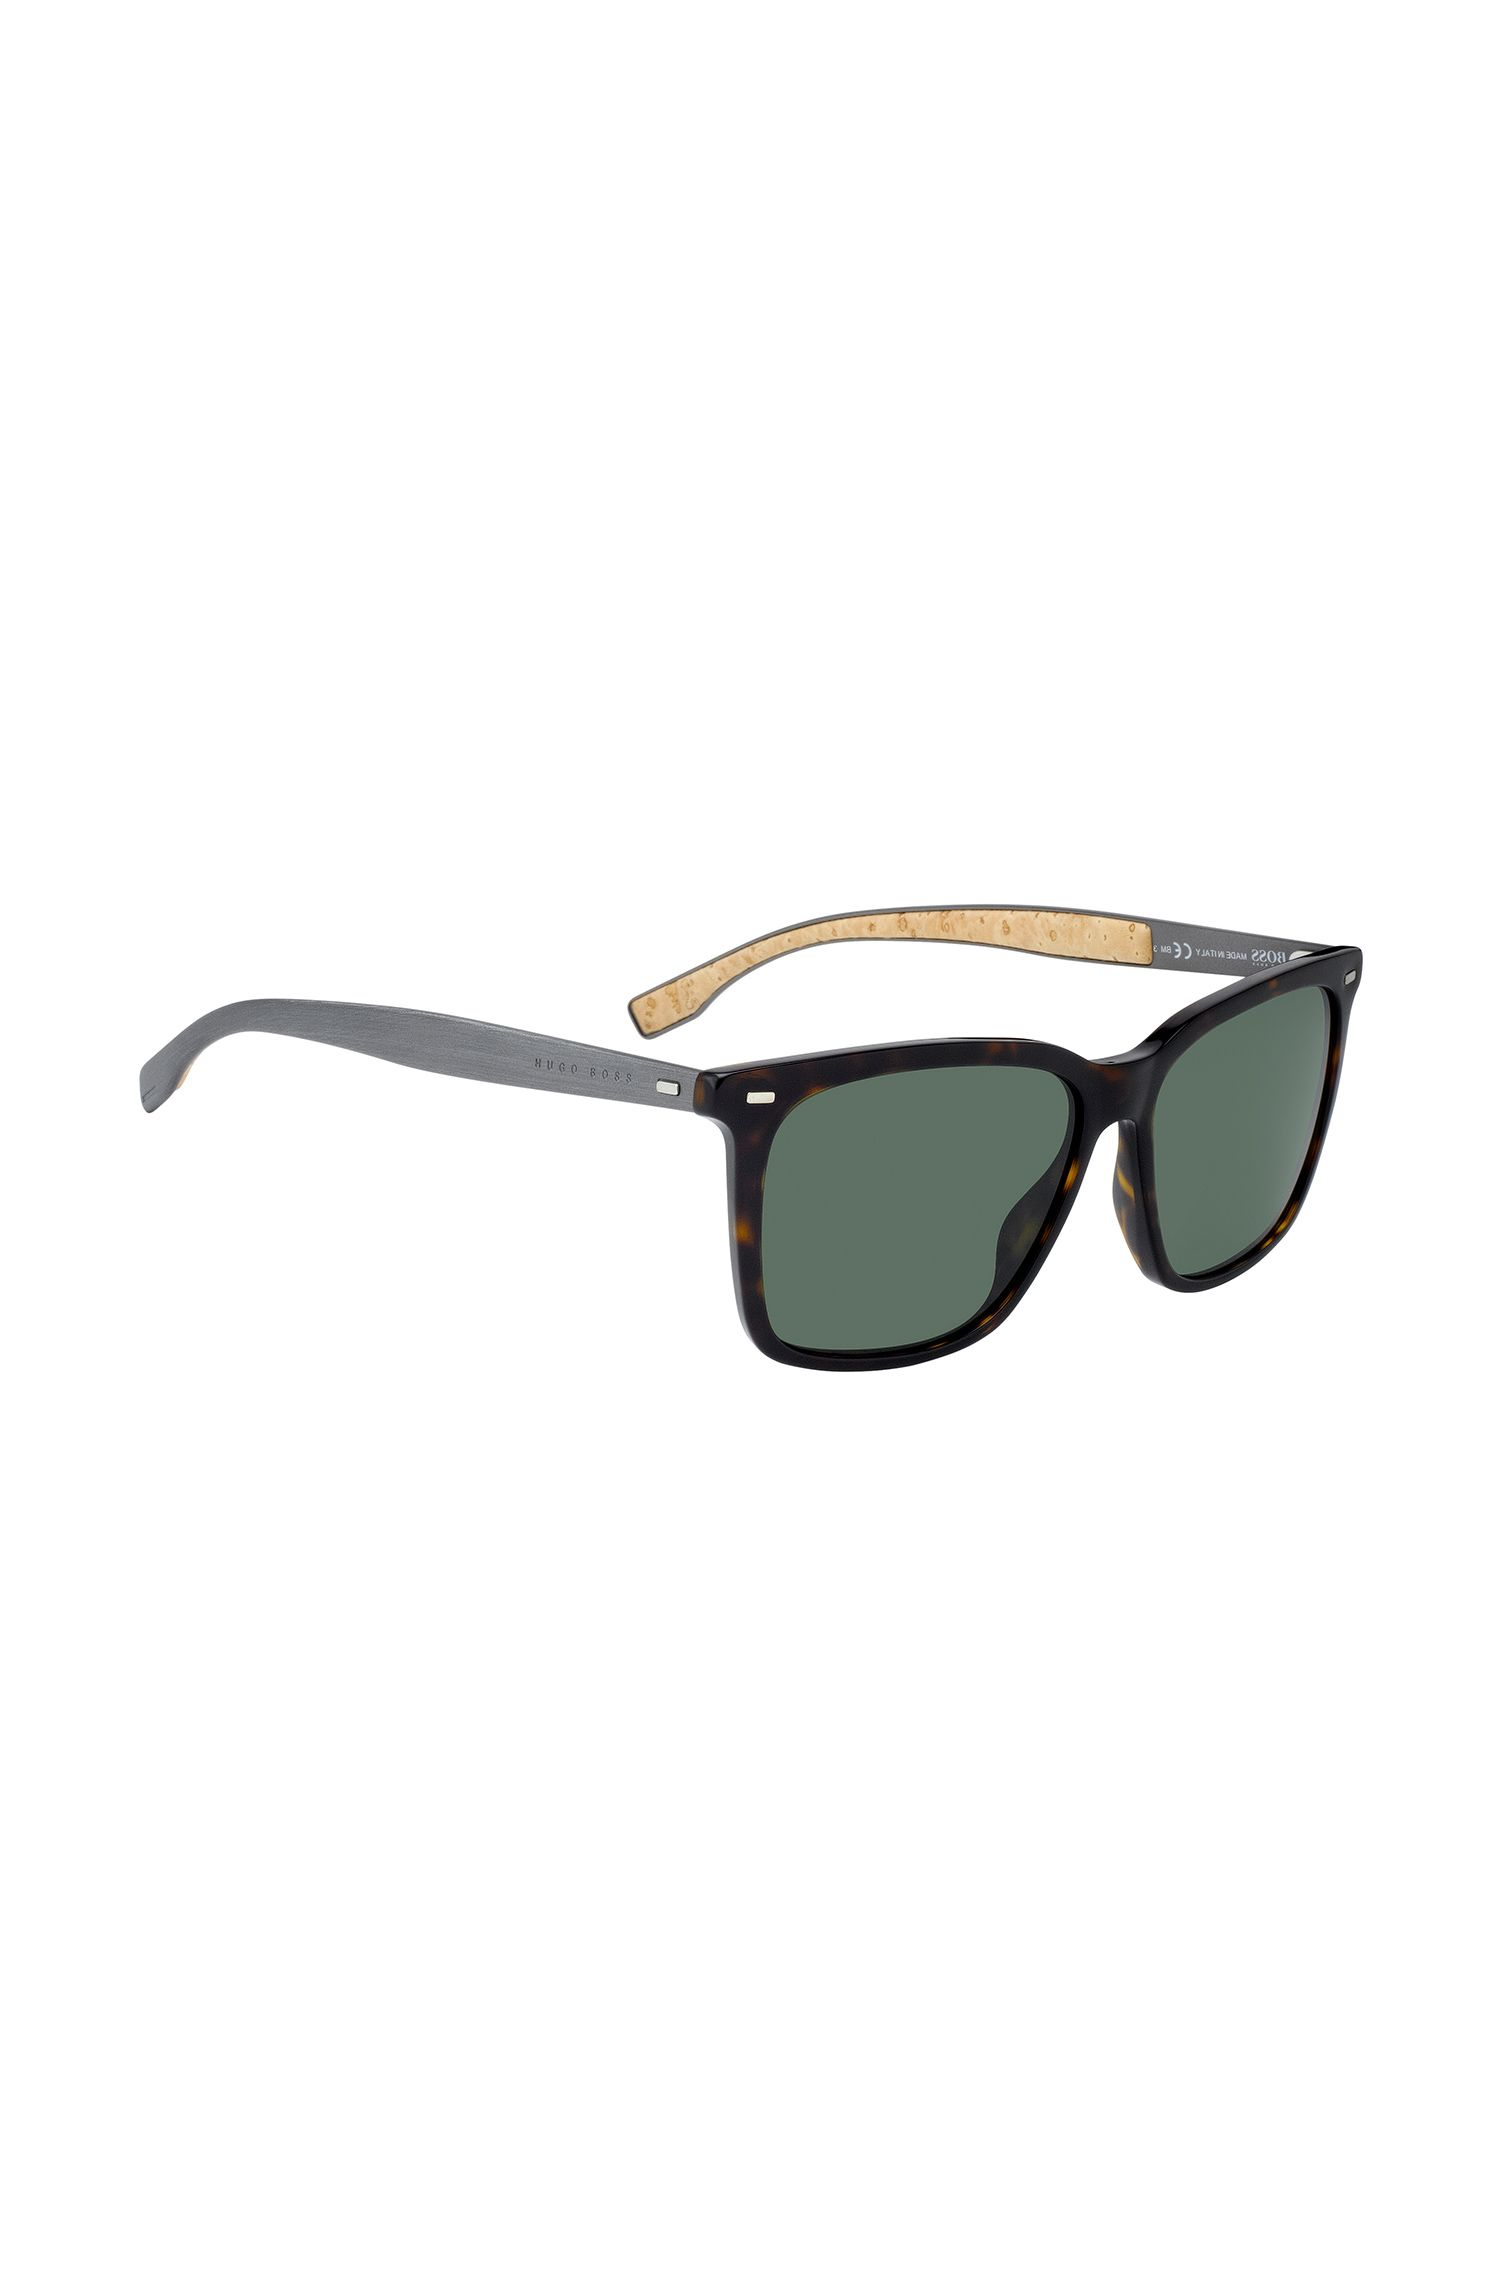 Sunglasses with tortoiseshell acetate frames BOSS